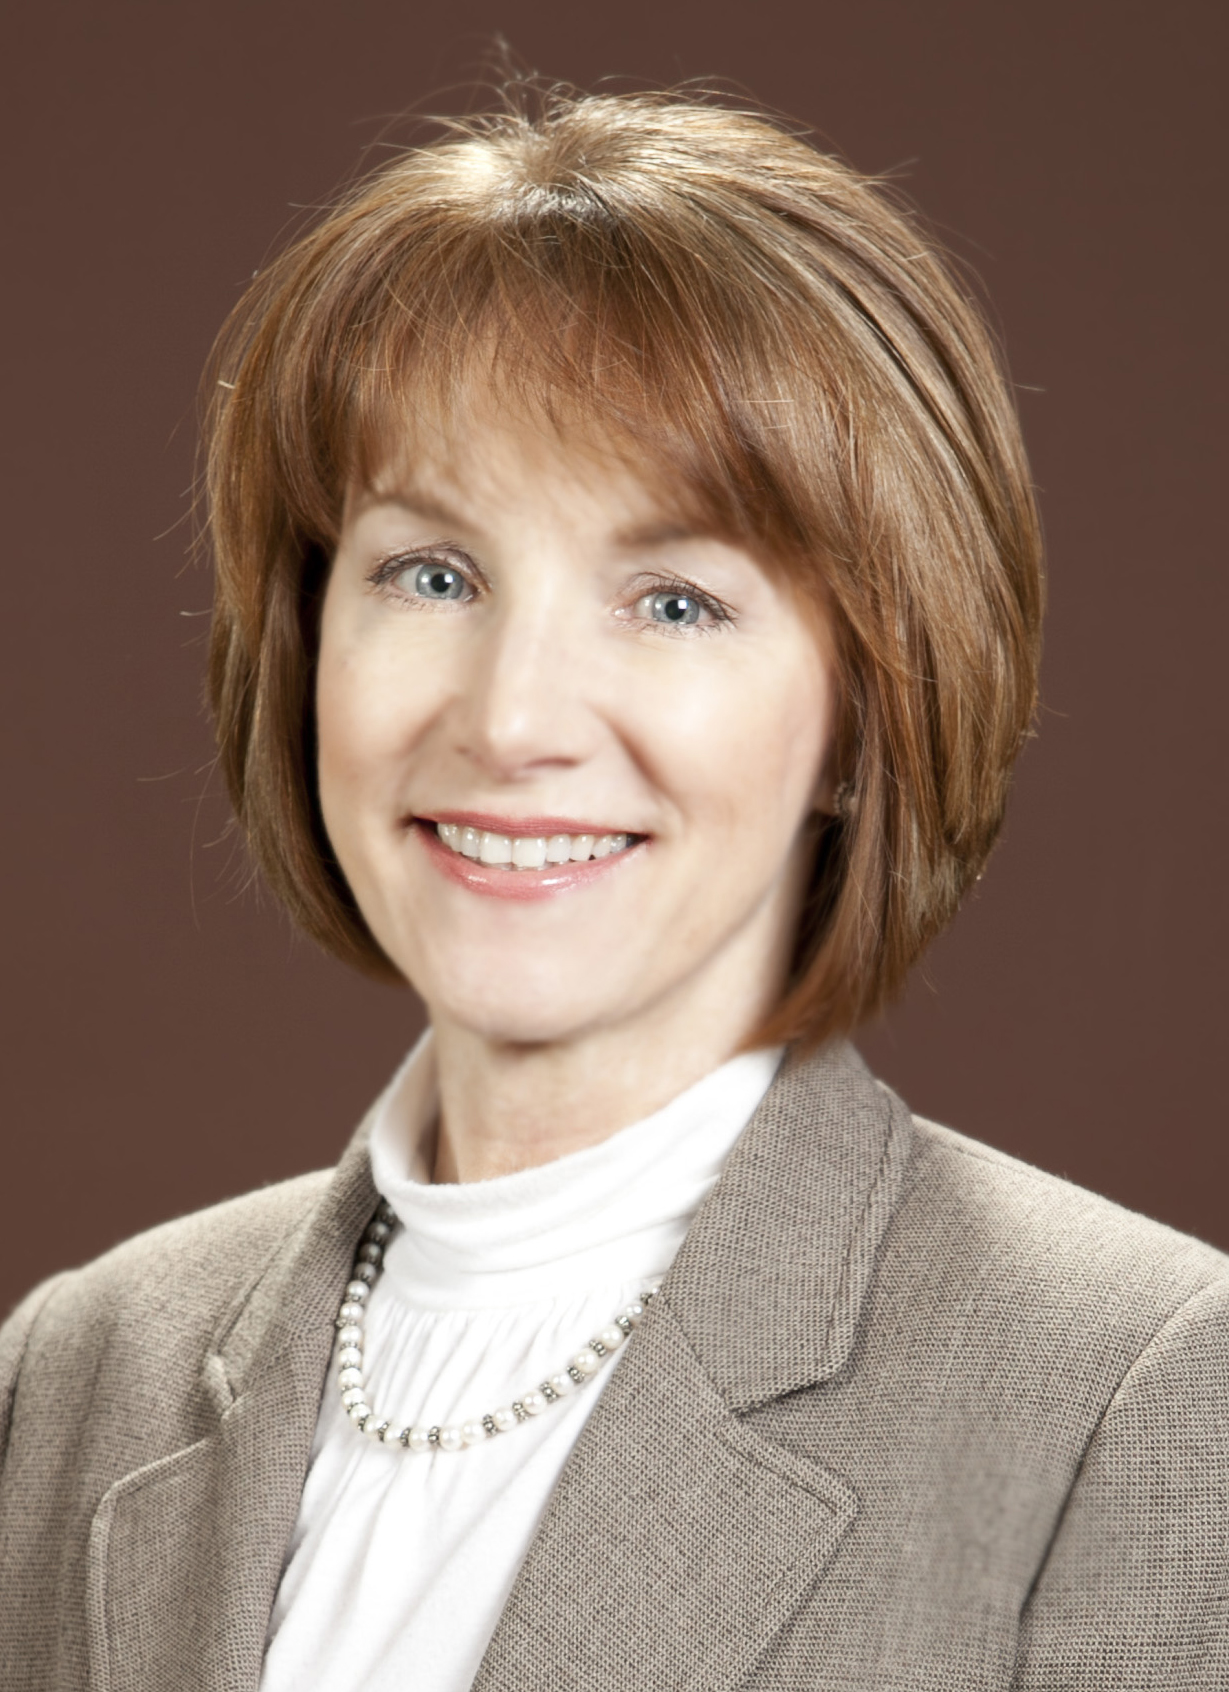 Sharon Reynolds - Ozark District Director